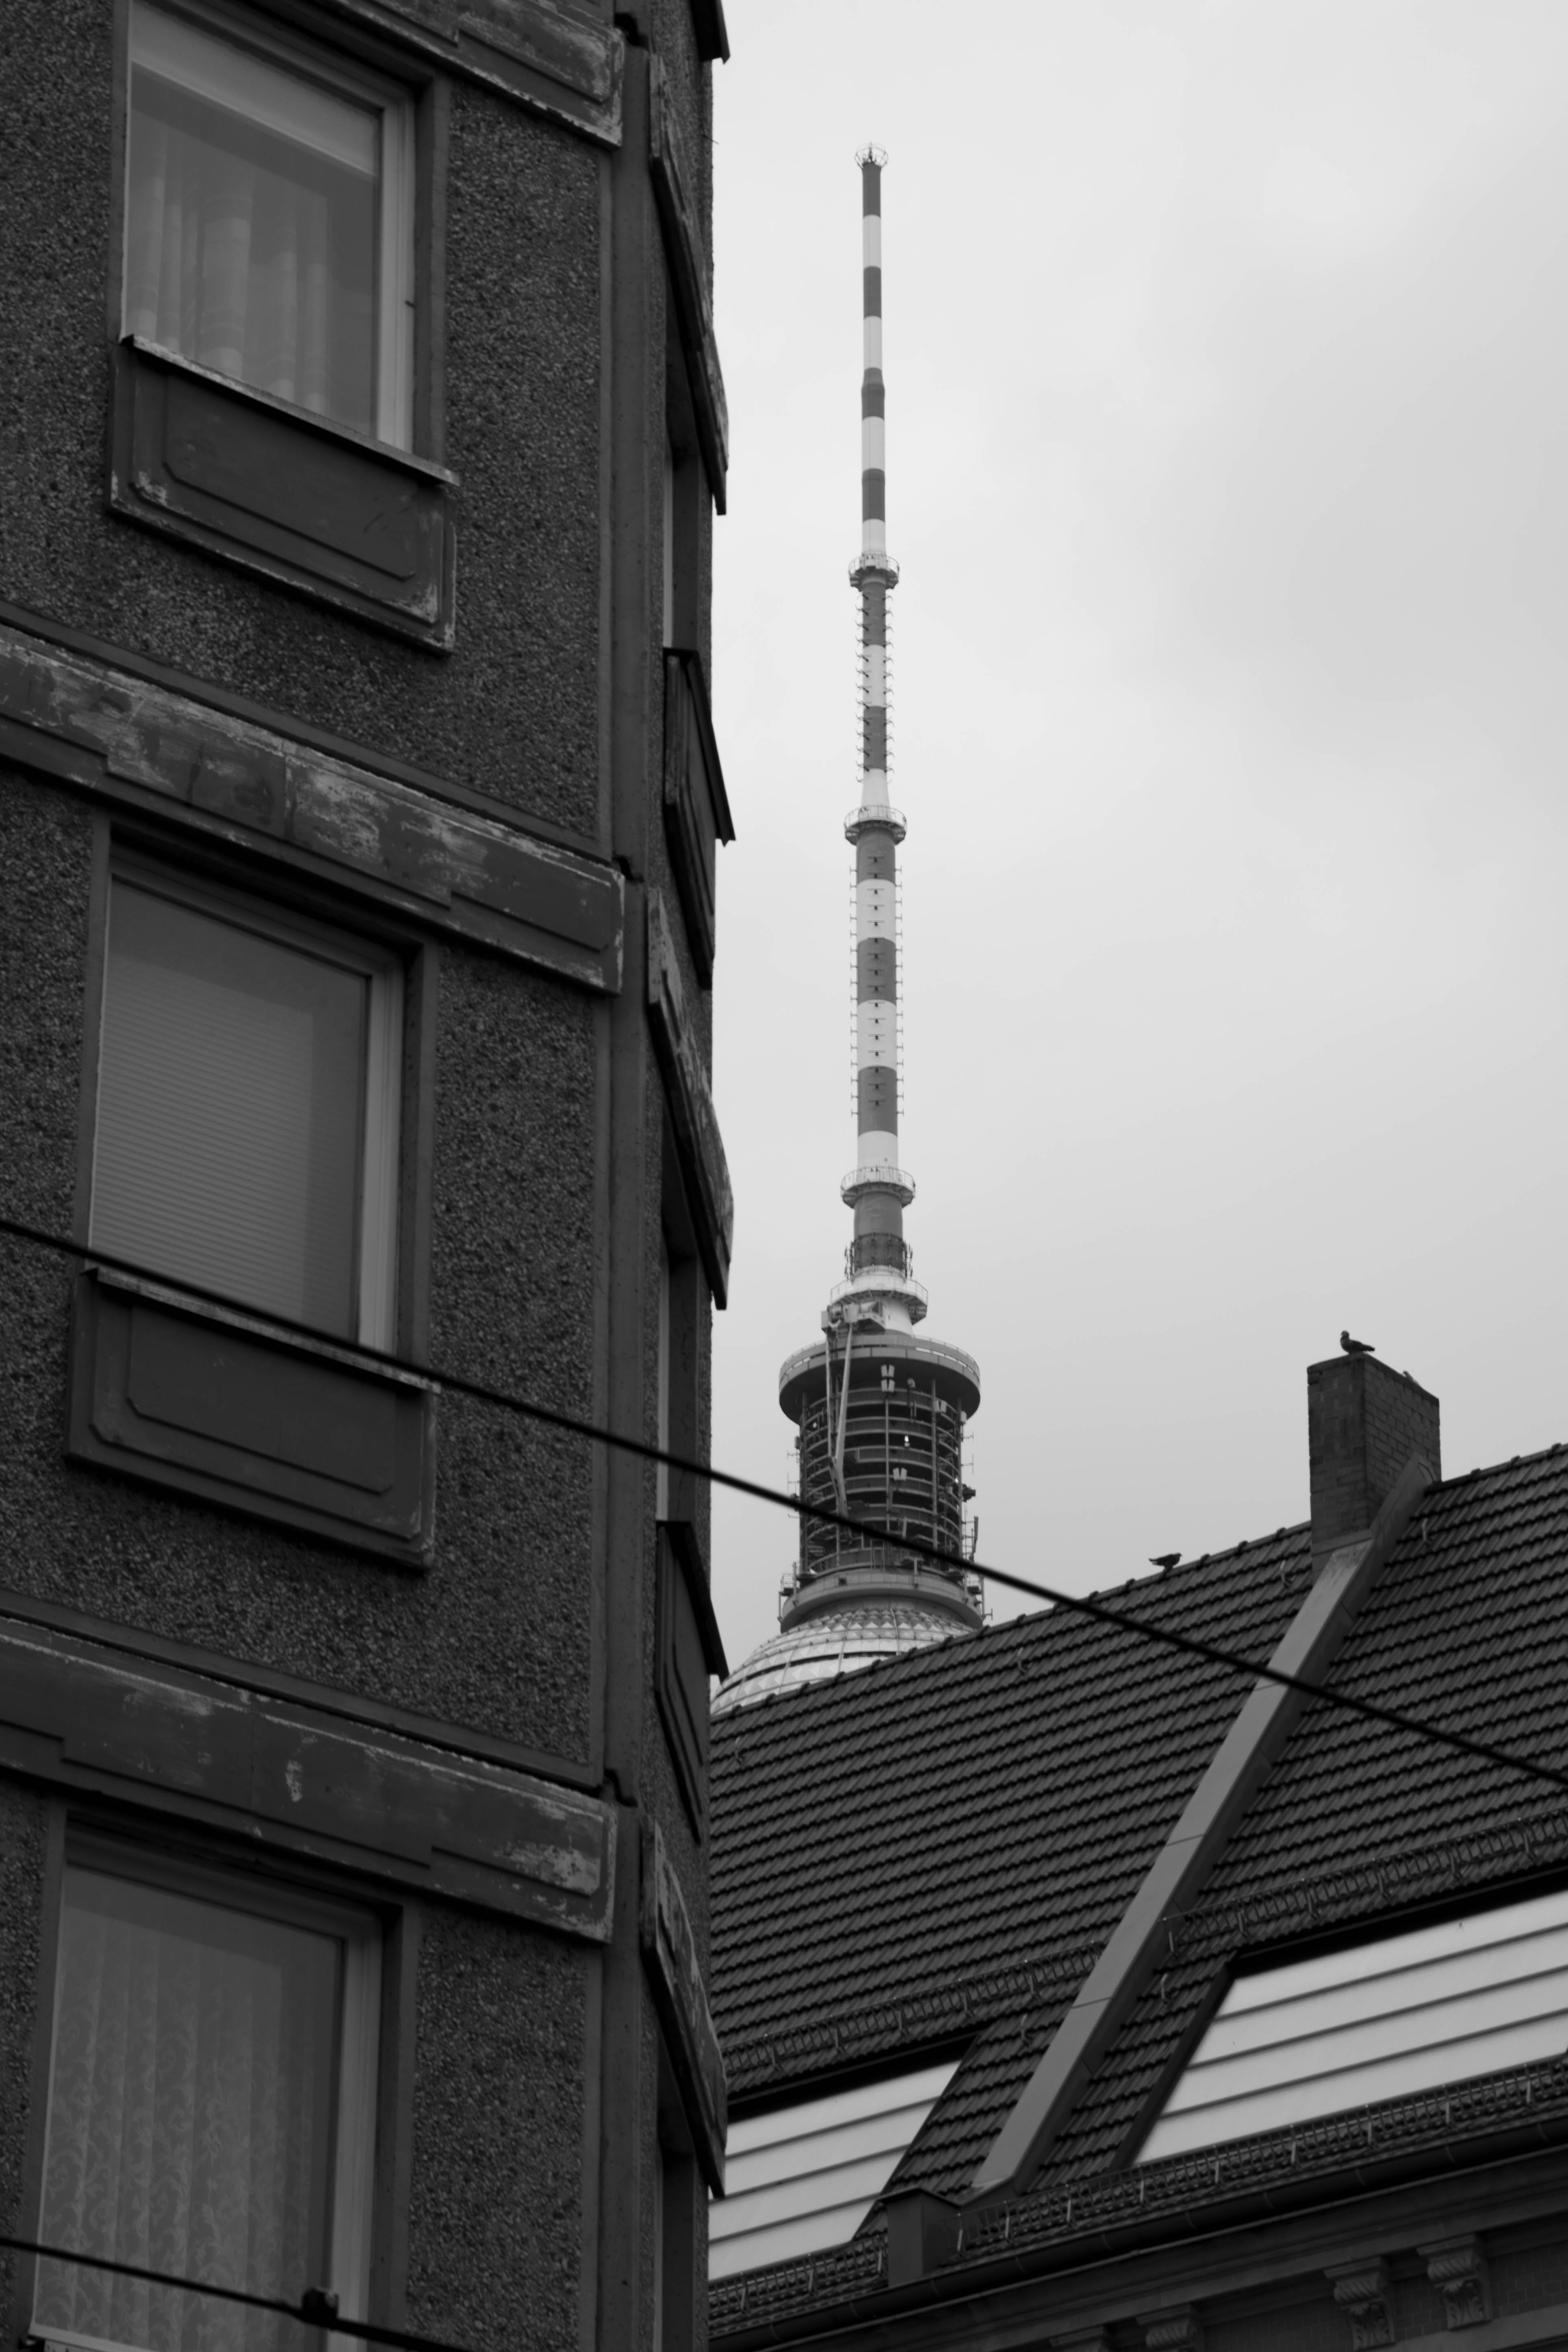 Free stock photo of architecture, berlin, Fernsehturm, black and white